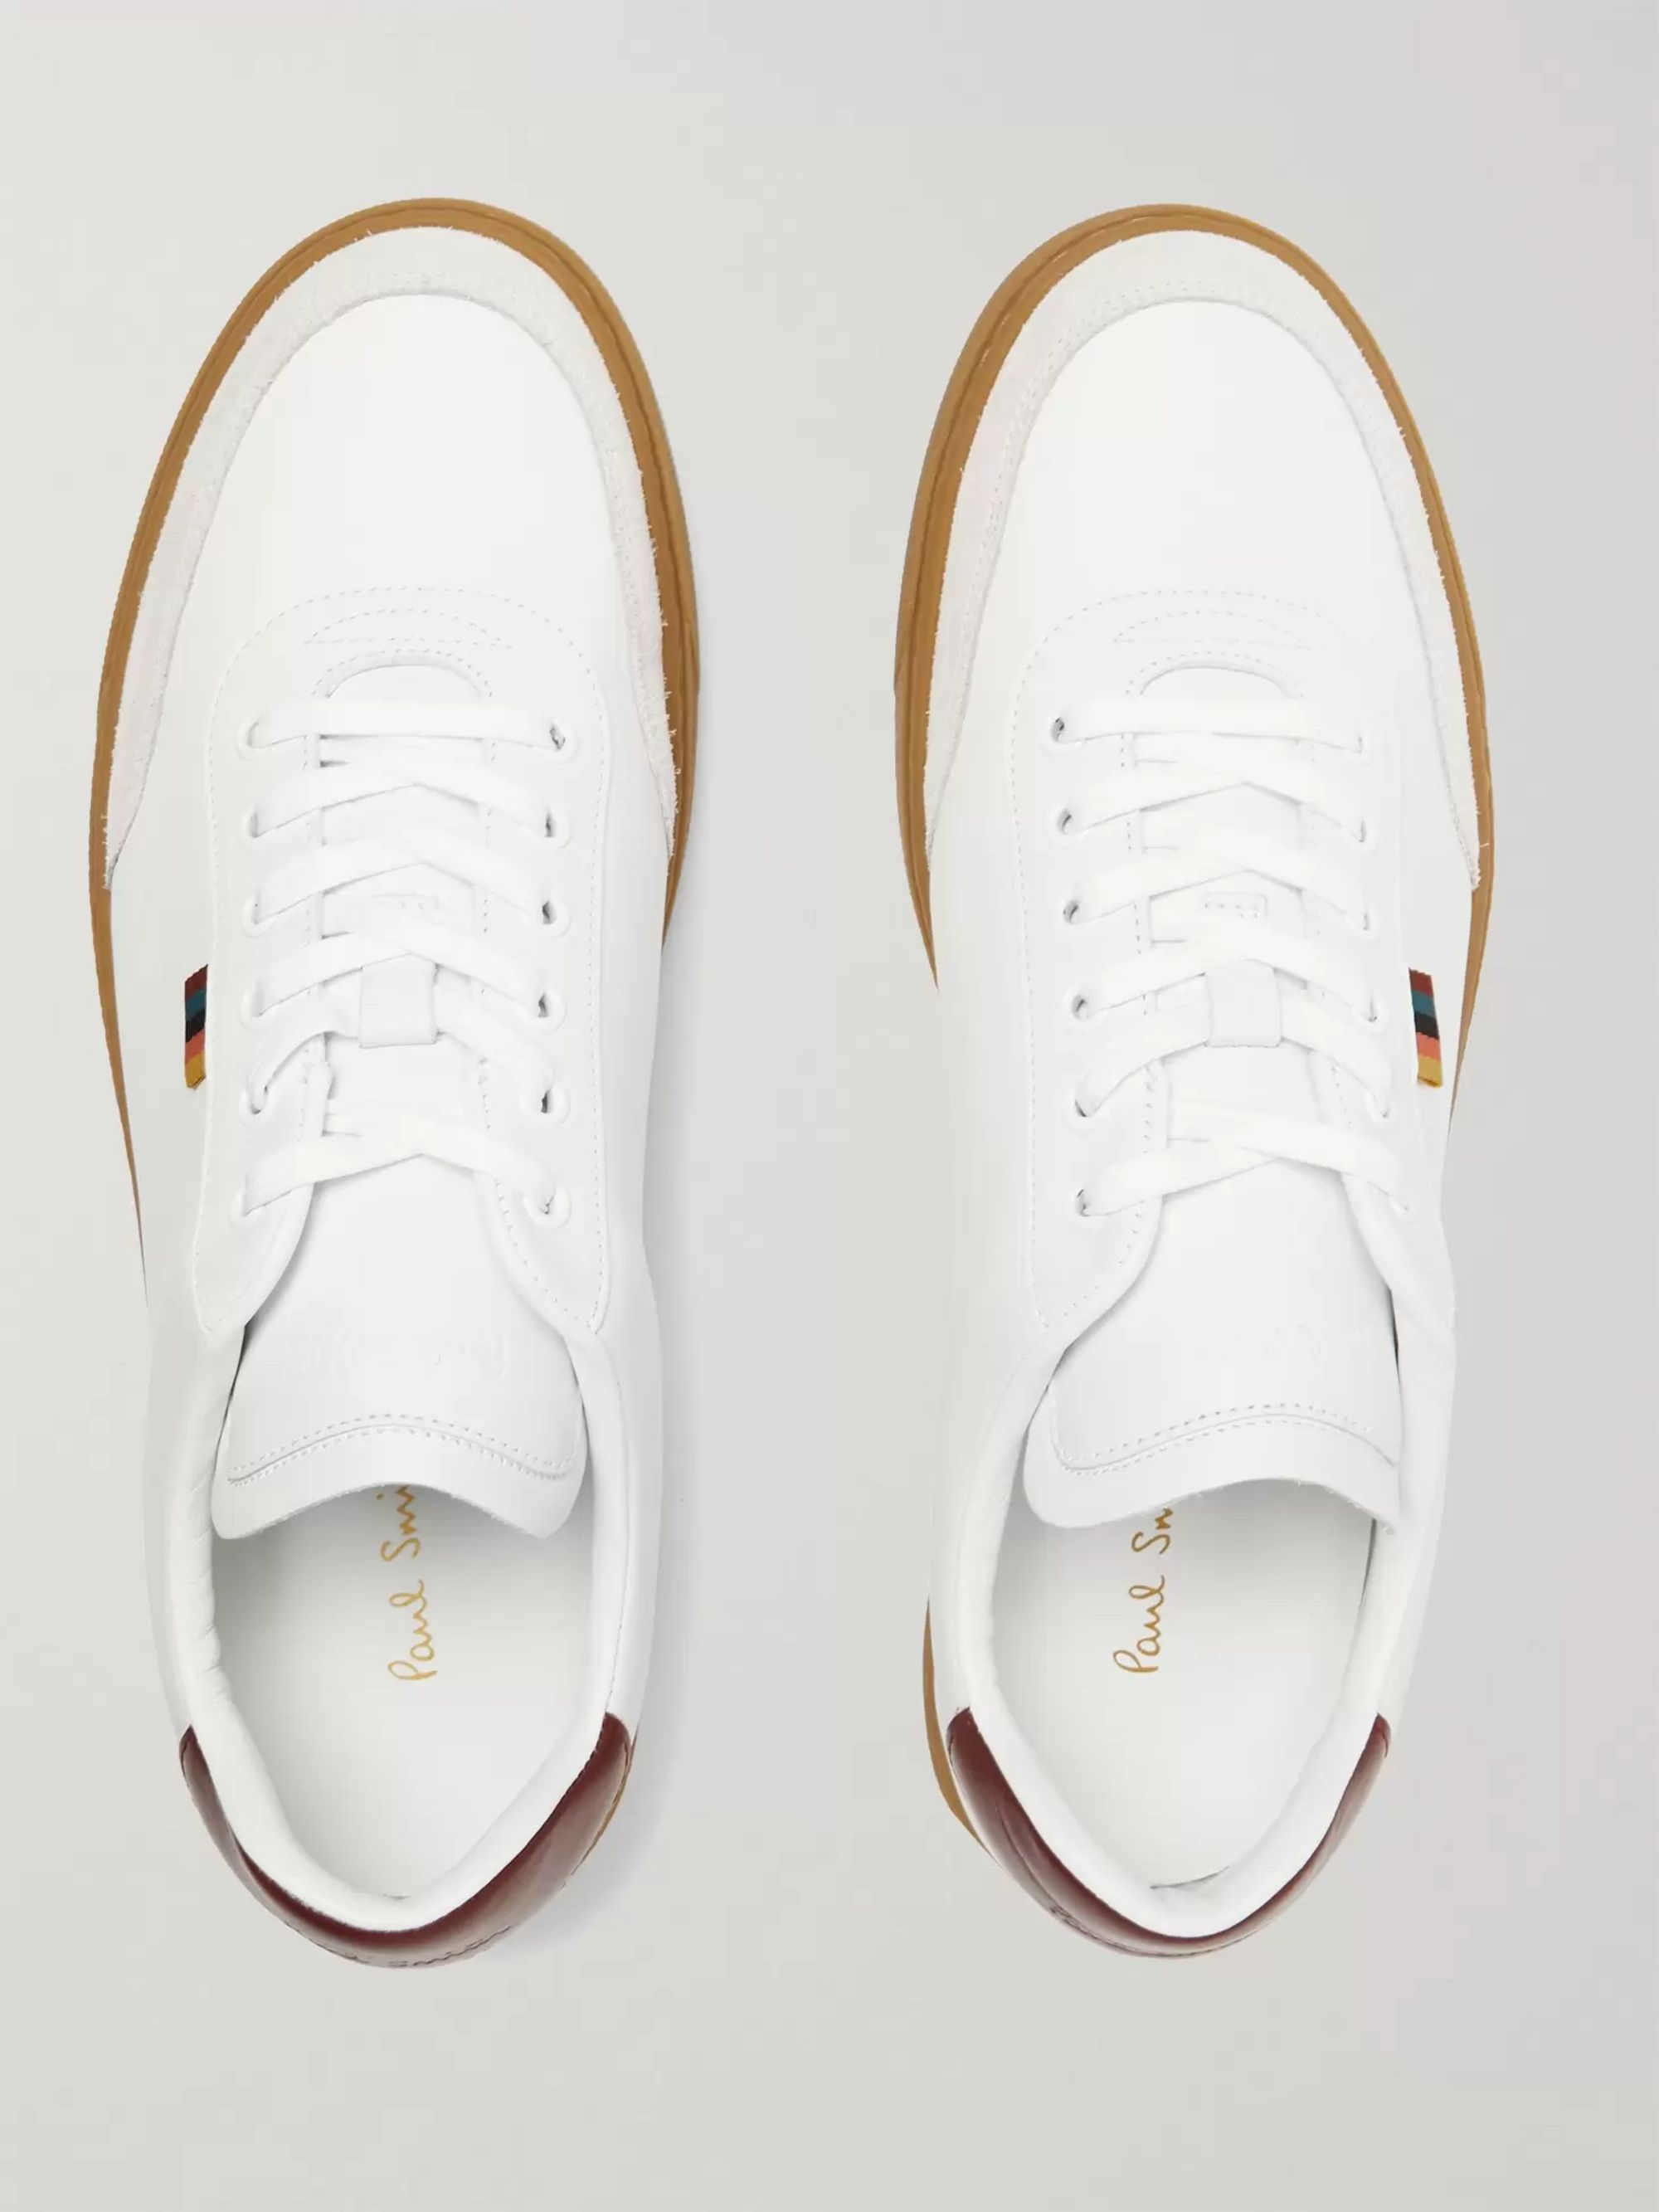 Paul Smith Earl Suede-Trimmed Leather Sneakers